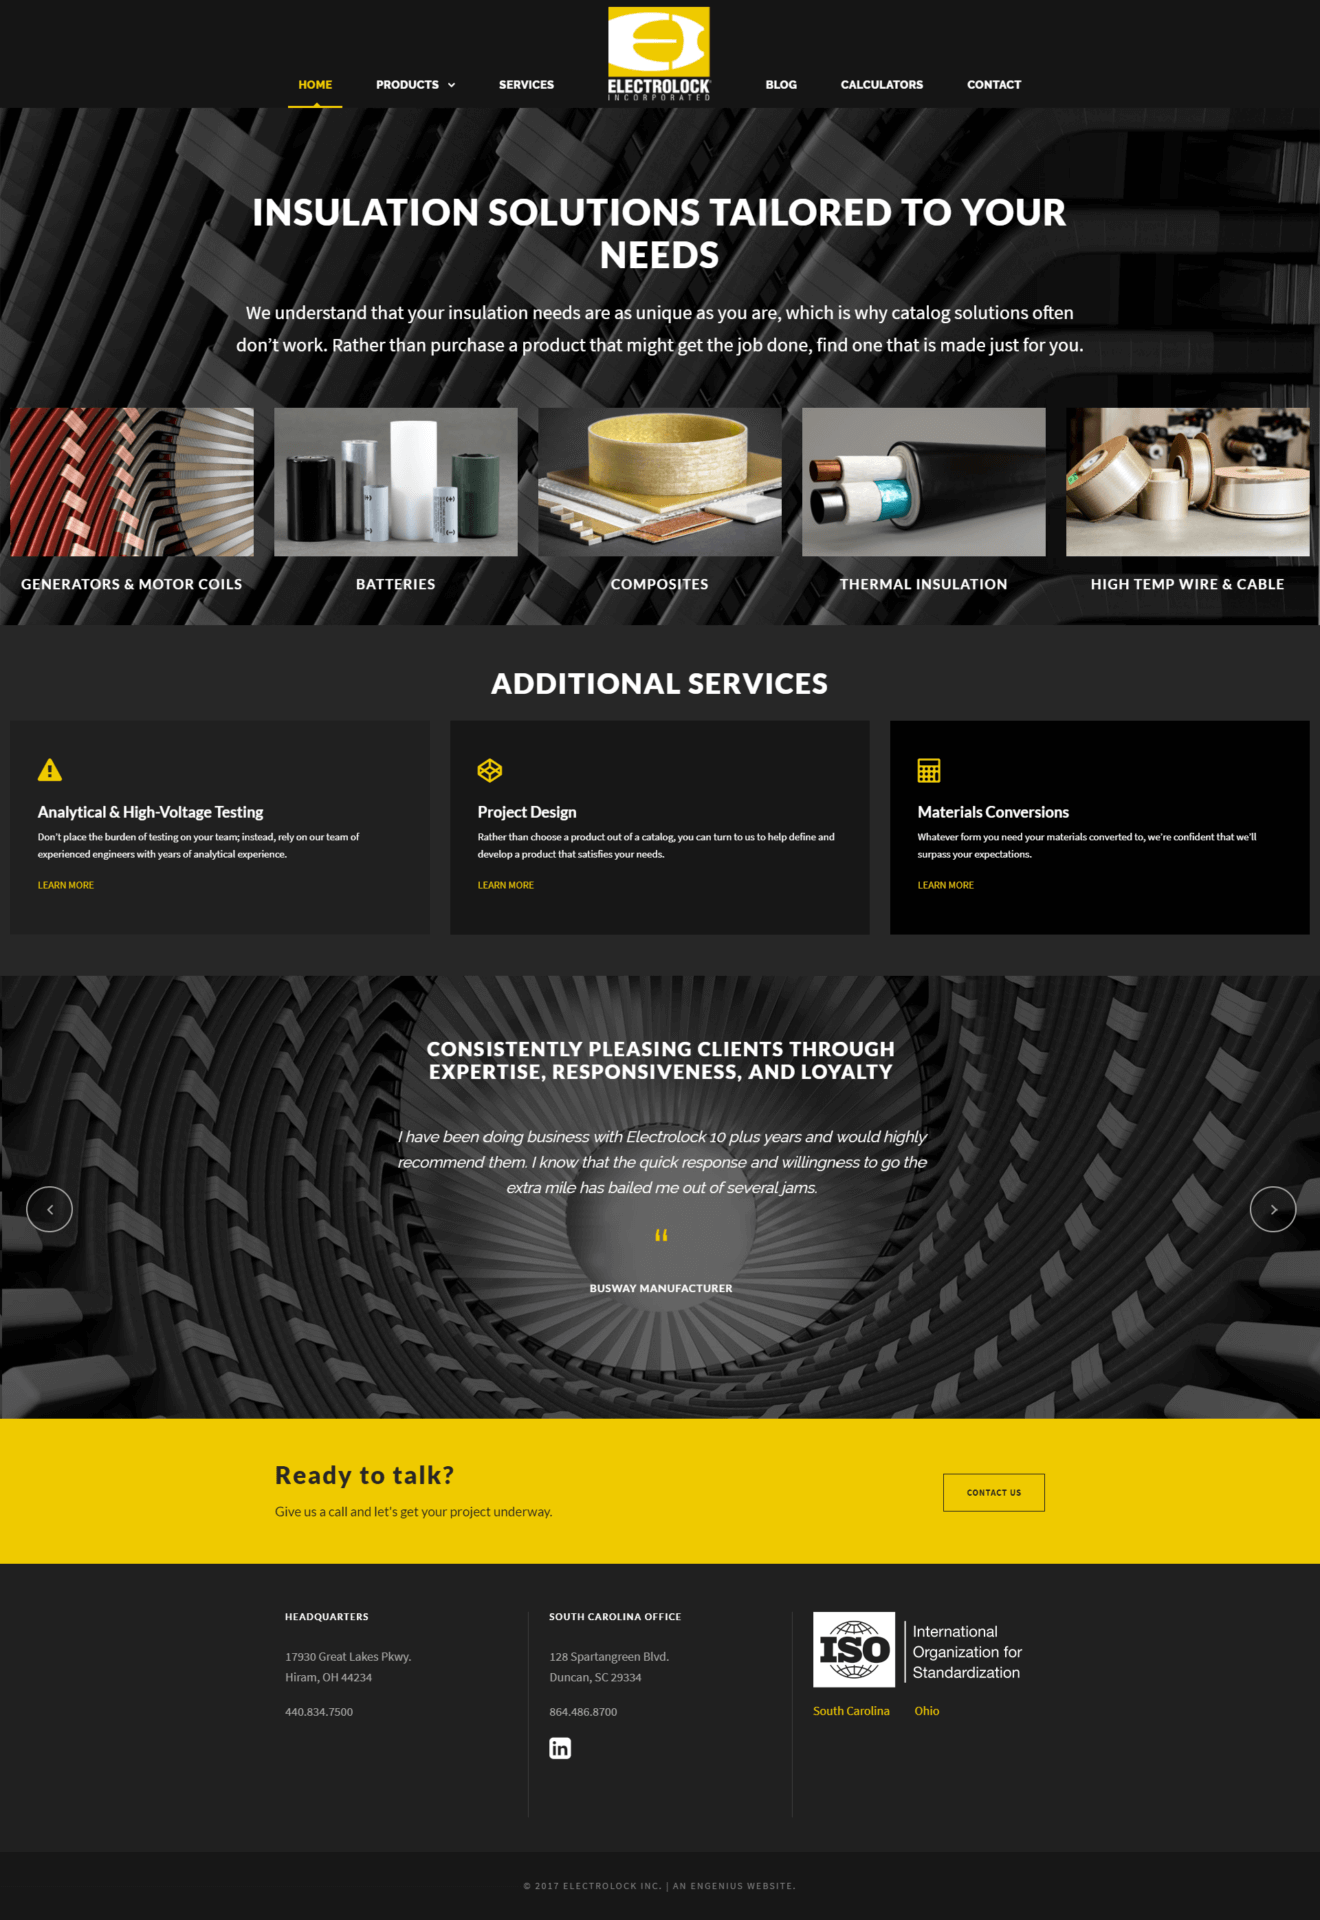 Electrolock homepage after the website redesign